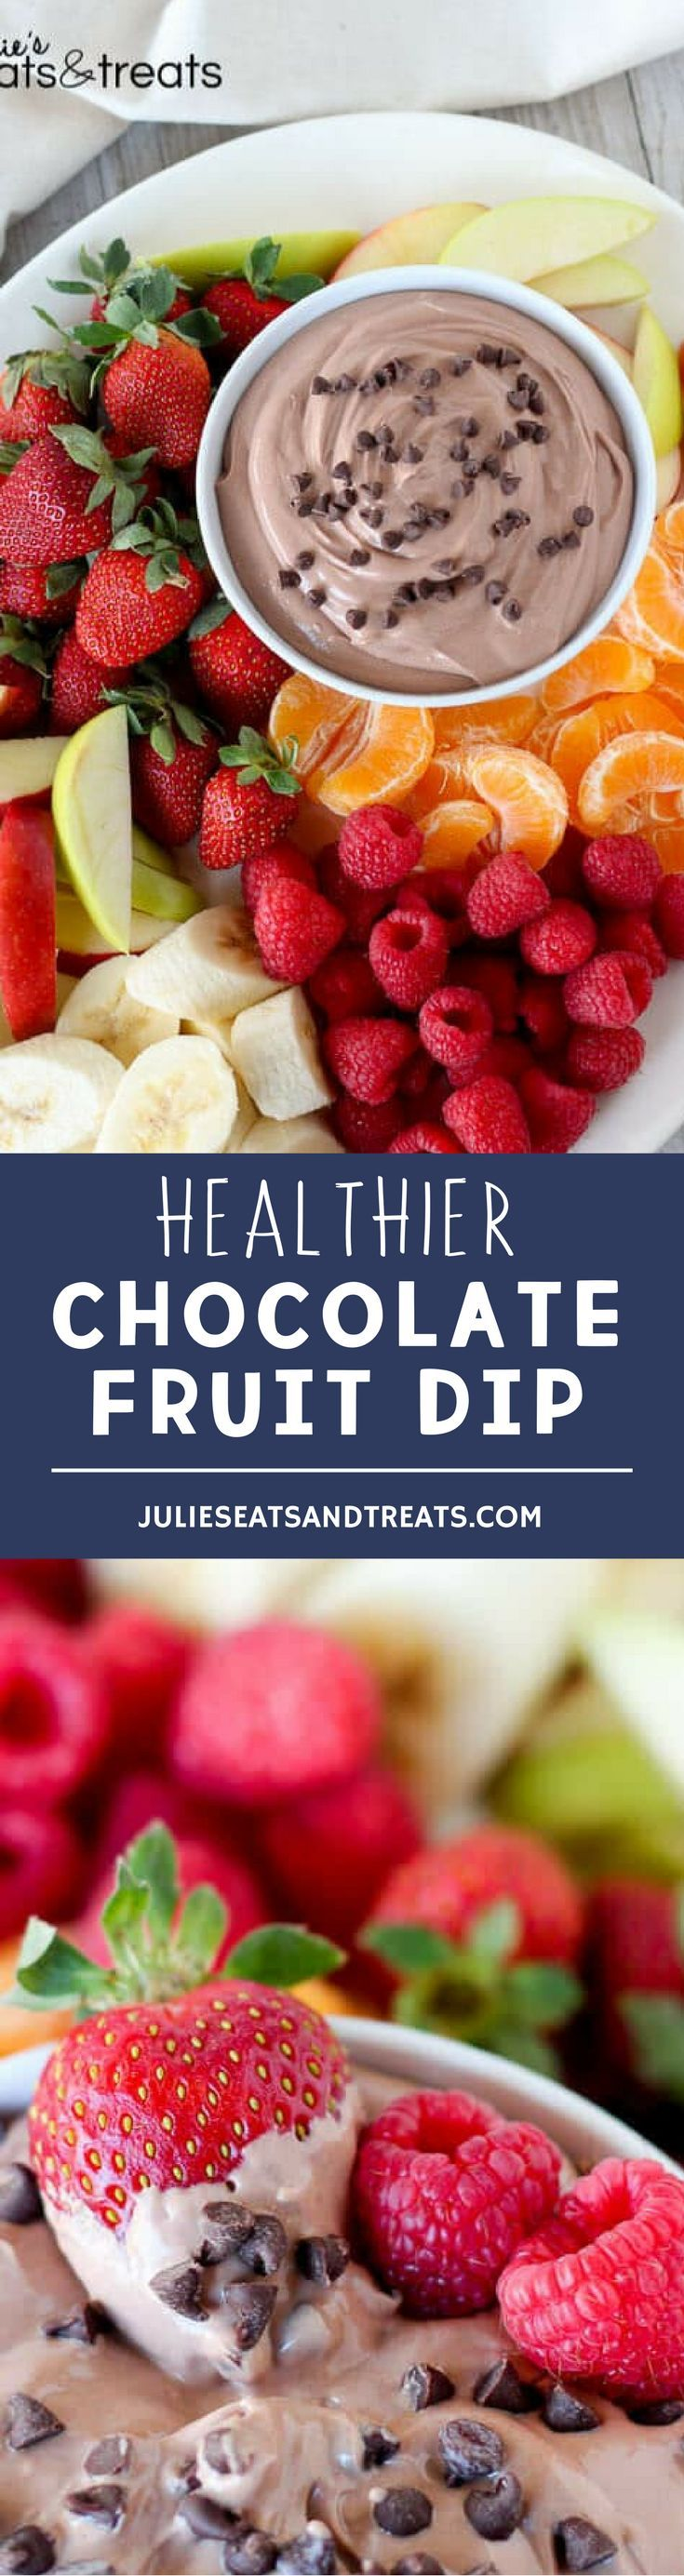 Healthier Chocolate Fruit Dip ~ A sweet and creamy chocolate fruit dip made healthier with Greek yogurt and light cream cheese. Serve with fruit or pretzels for dipping. More homemade and made from scratch recipes from @julieseats